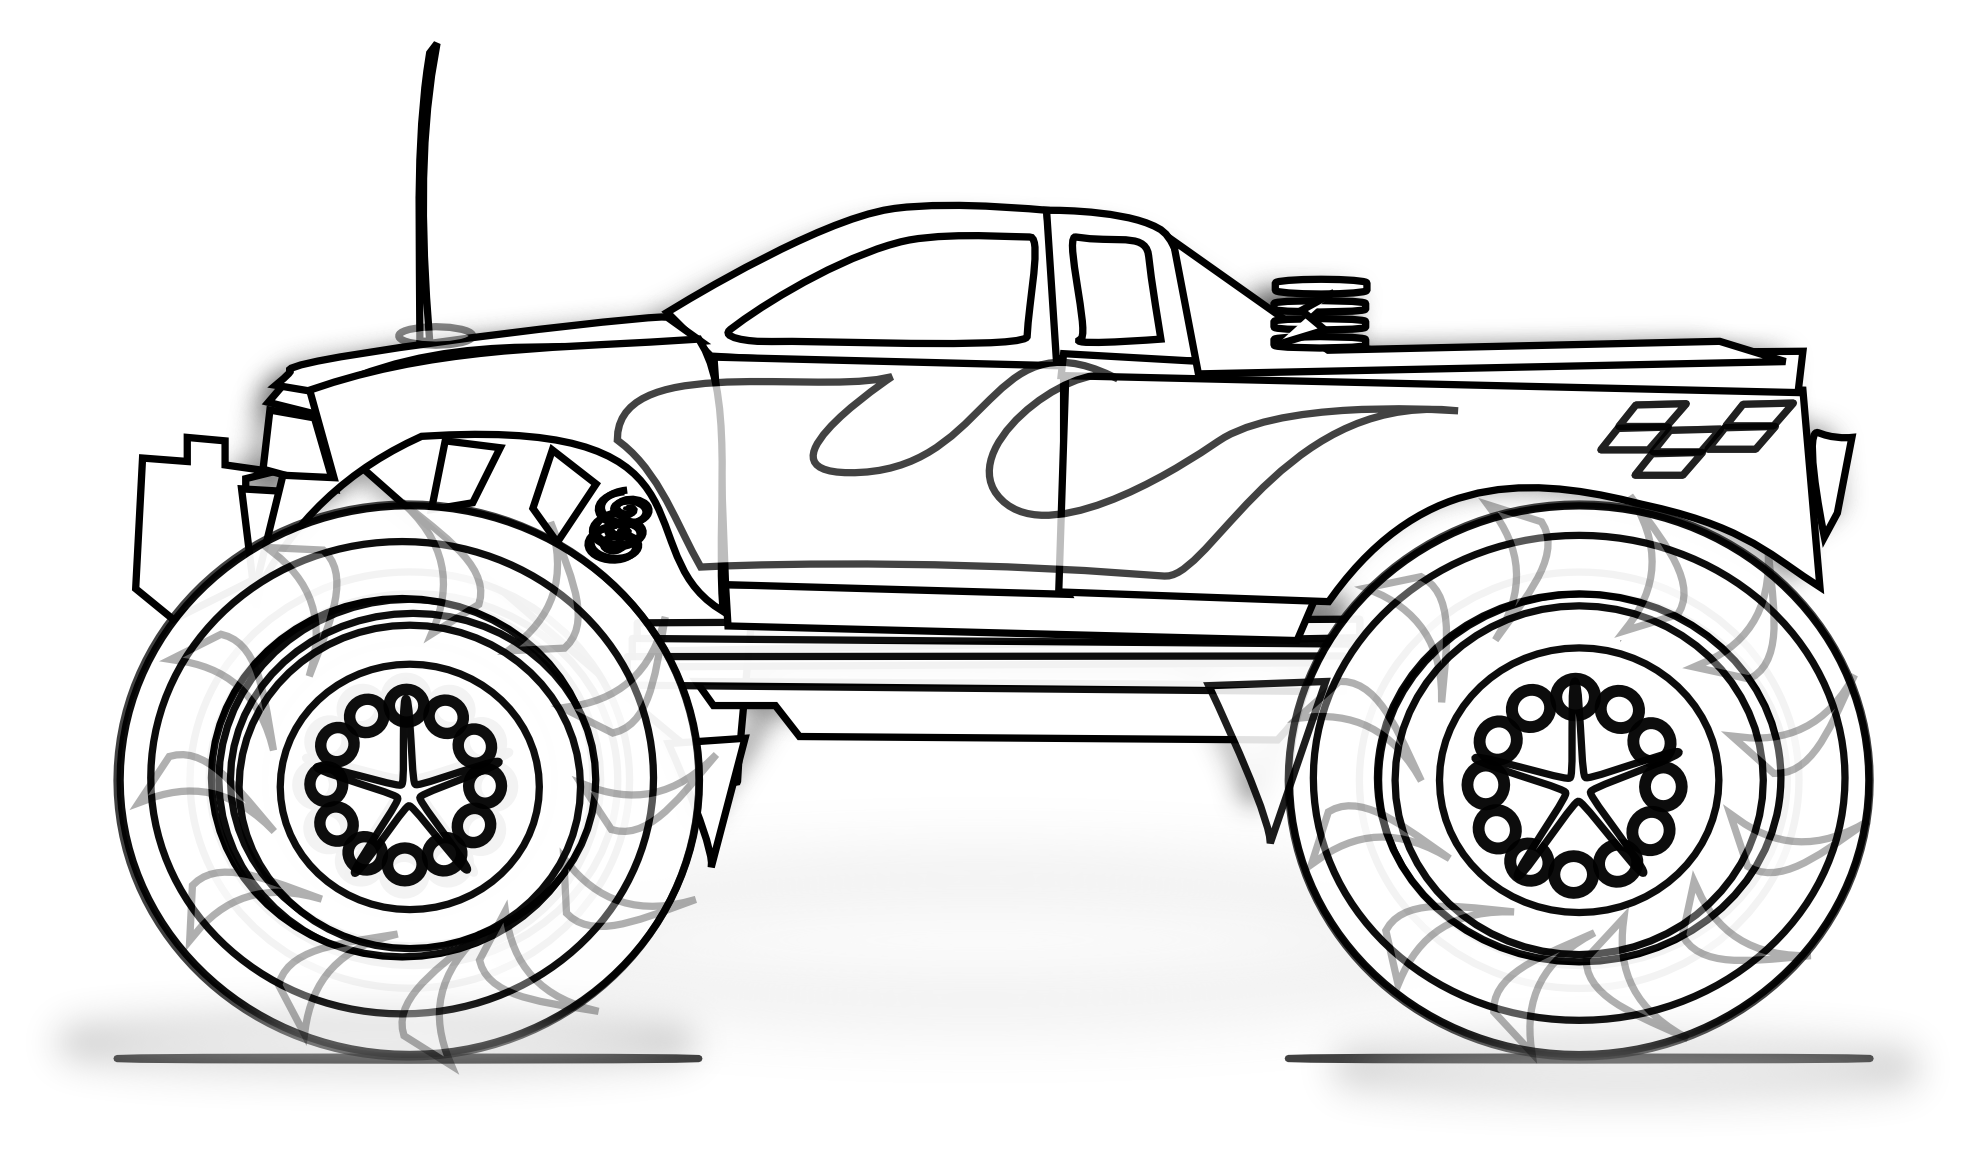 hight resolution of free printable monster truck coloring pages for kids birthdayprint pictures free printable monster truck coloring pagjuies